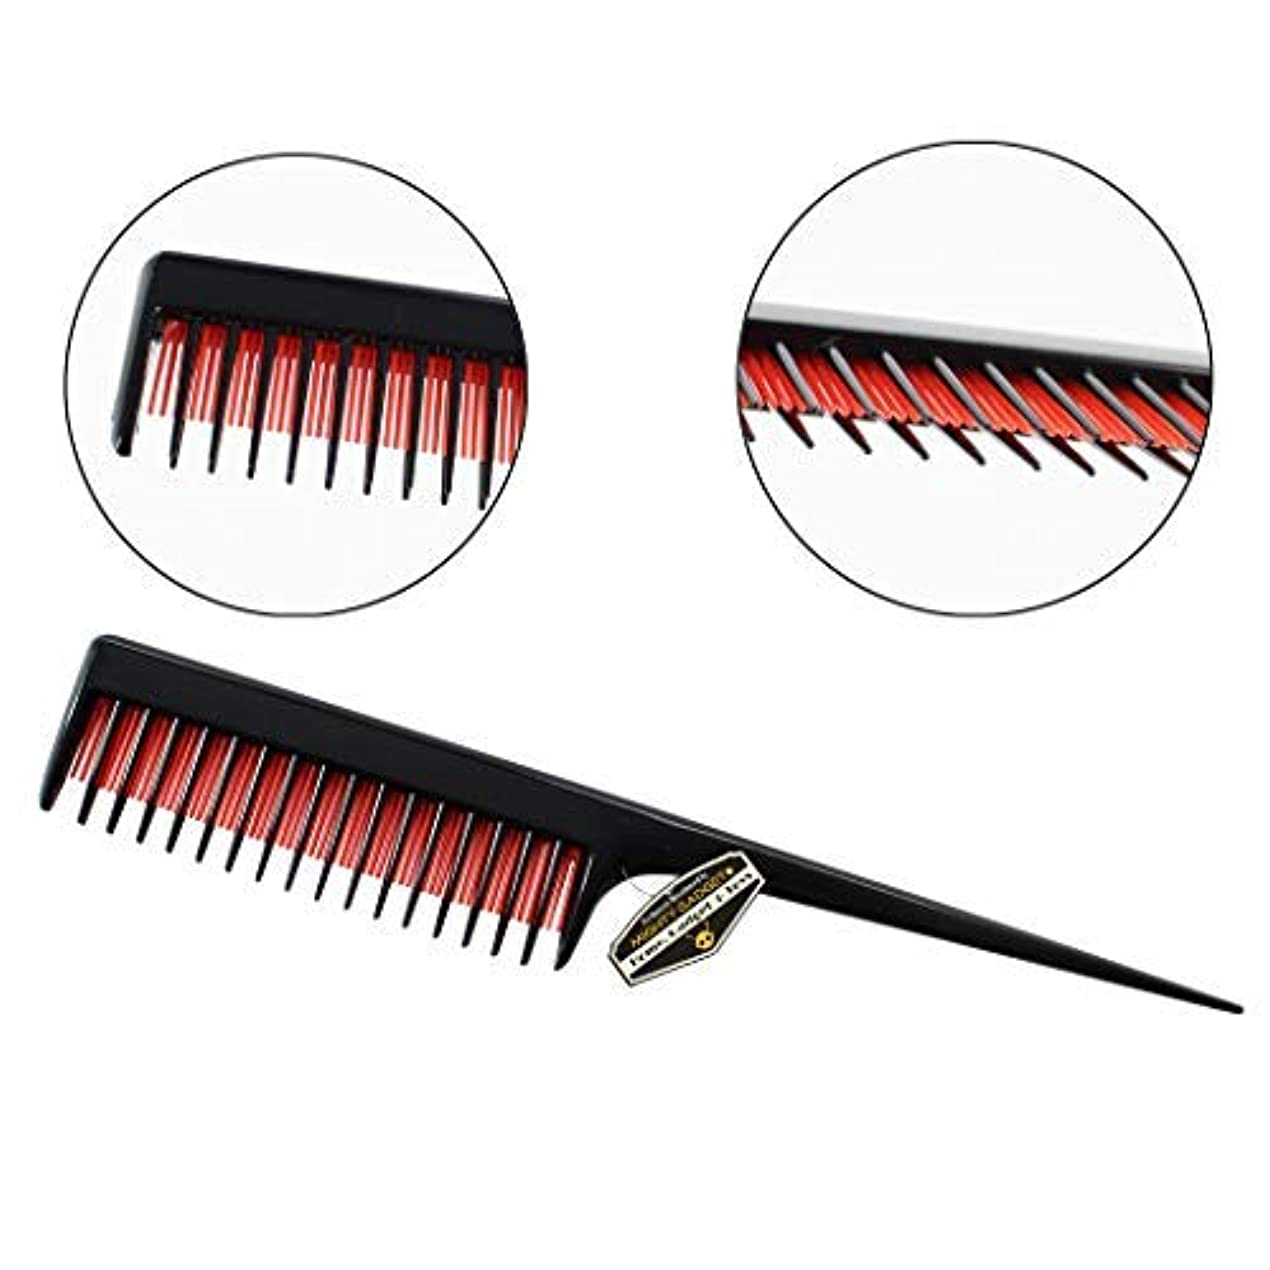 消防士泥観客3 Pack of Mighty Gadget 8 inch Teasing Comb - Rat Tail Comb for Back Combing, Root Teasing, Adding Volume, Evening...